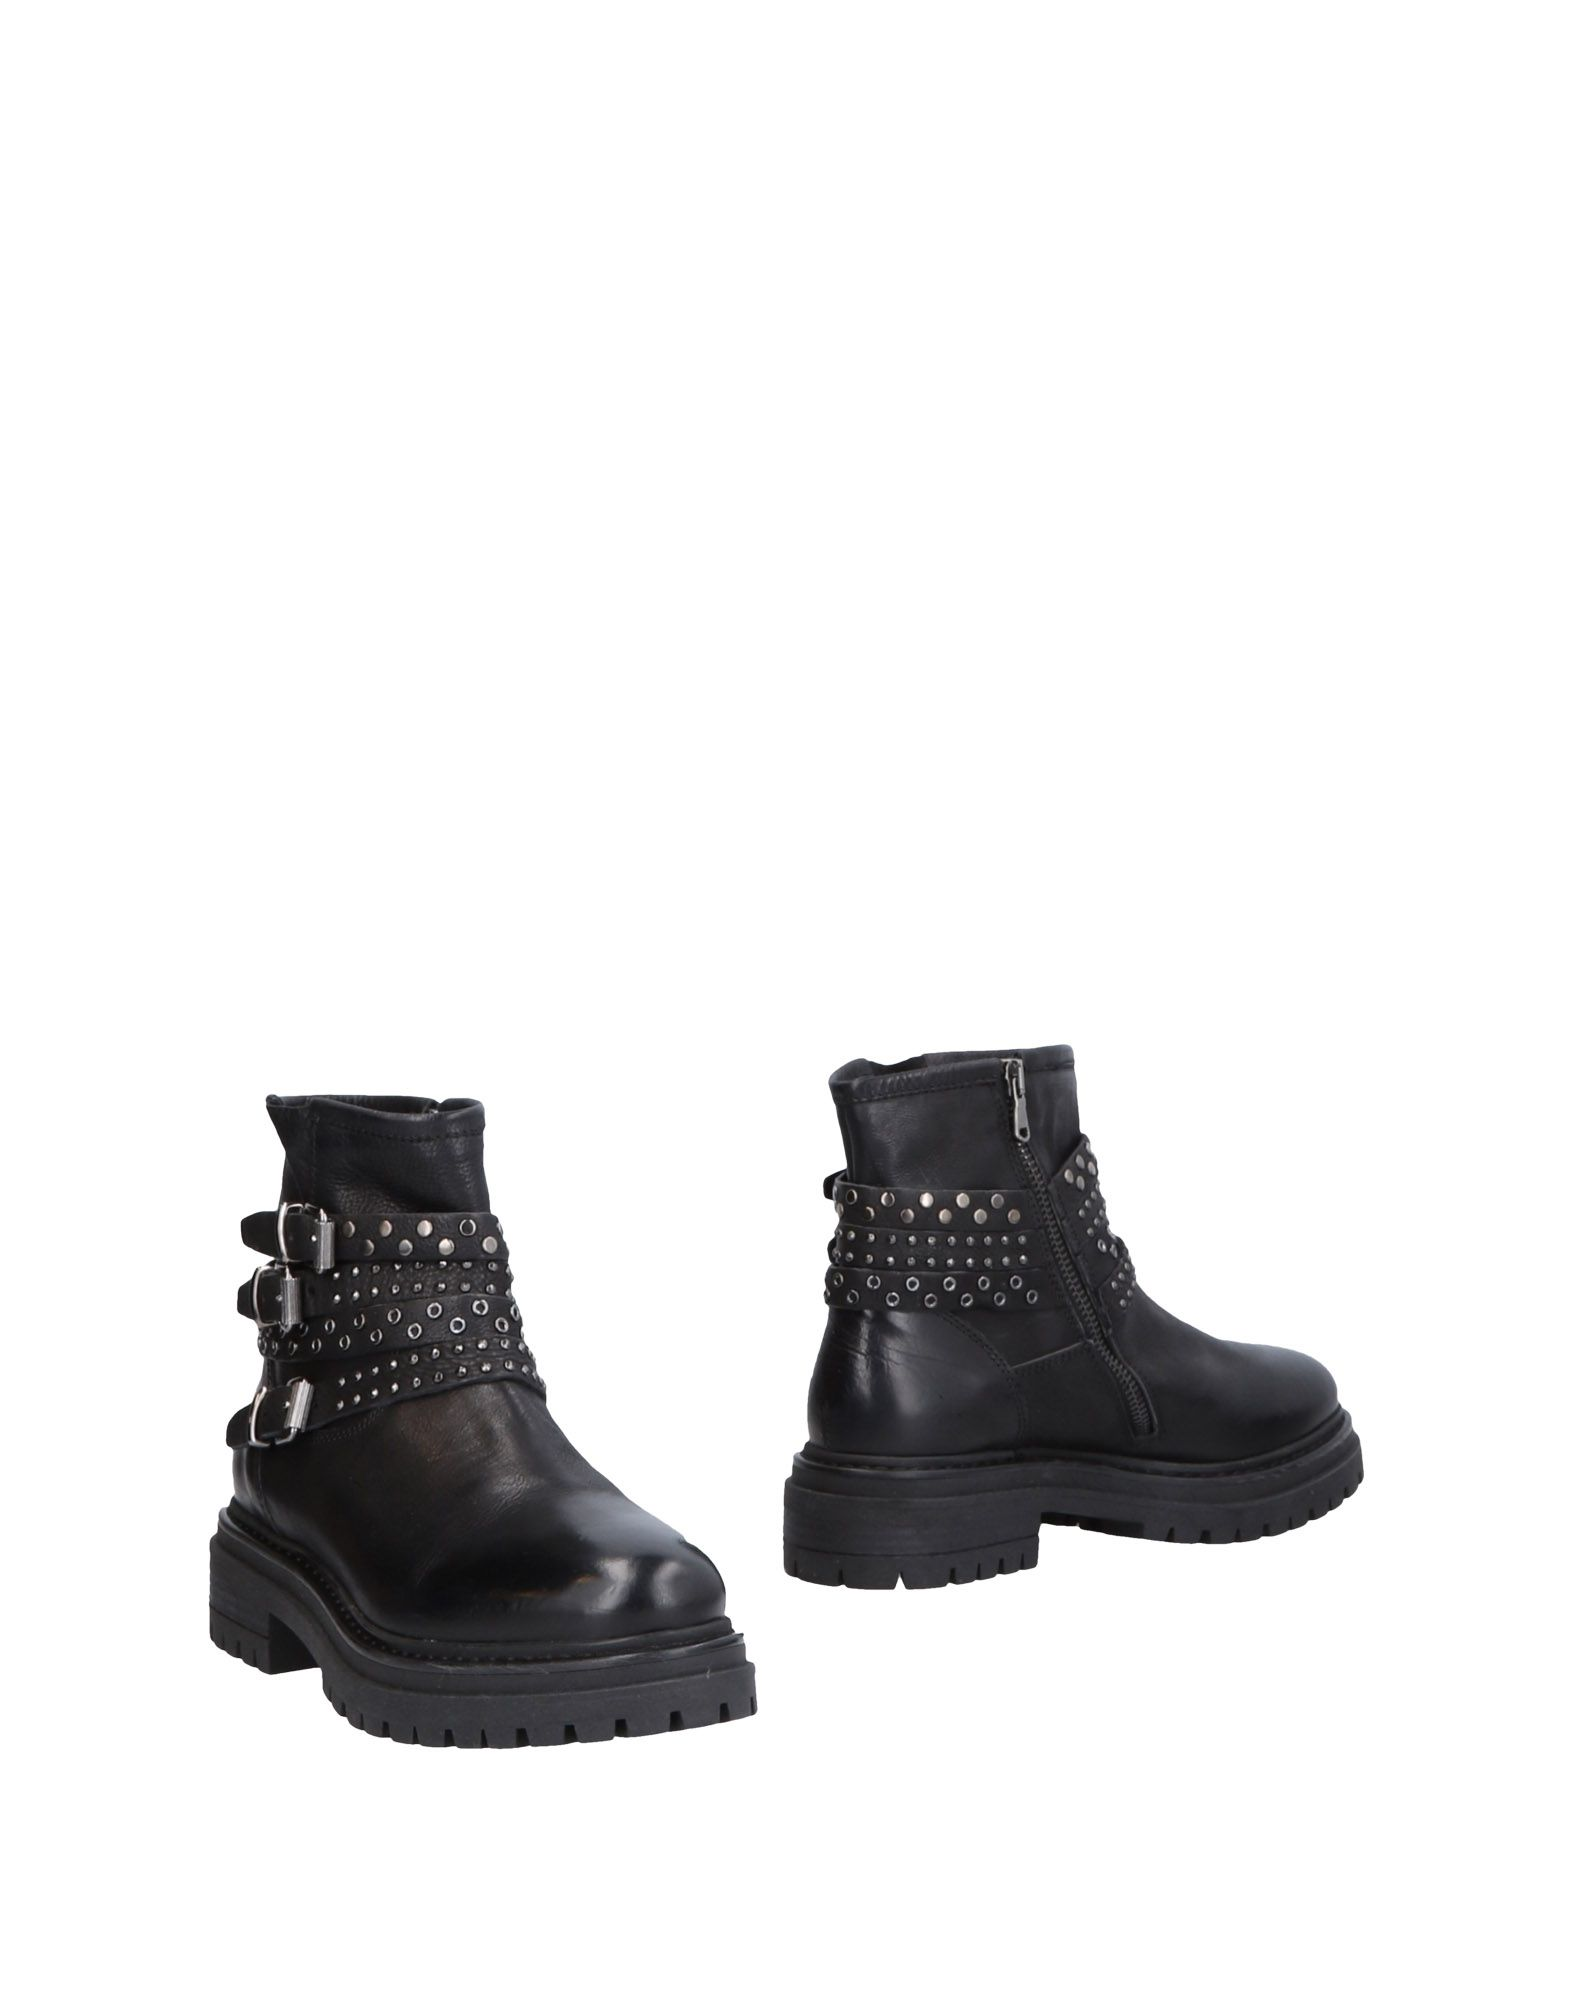 Keb Ankle Boot - Women Women Women Keb Ankle Boots online on  United Kingdom - 11467368JX 2393f8